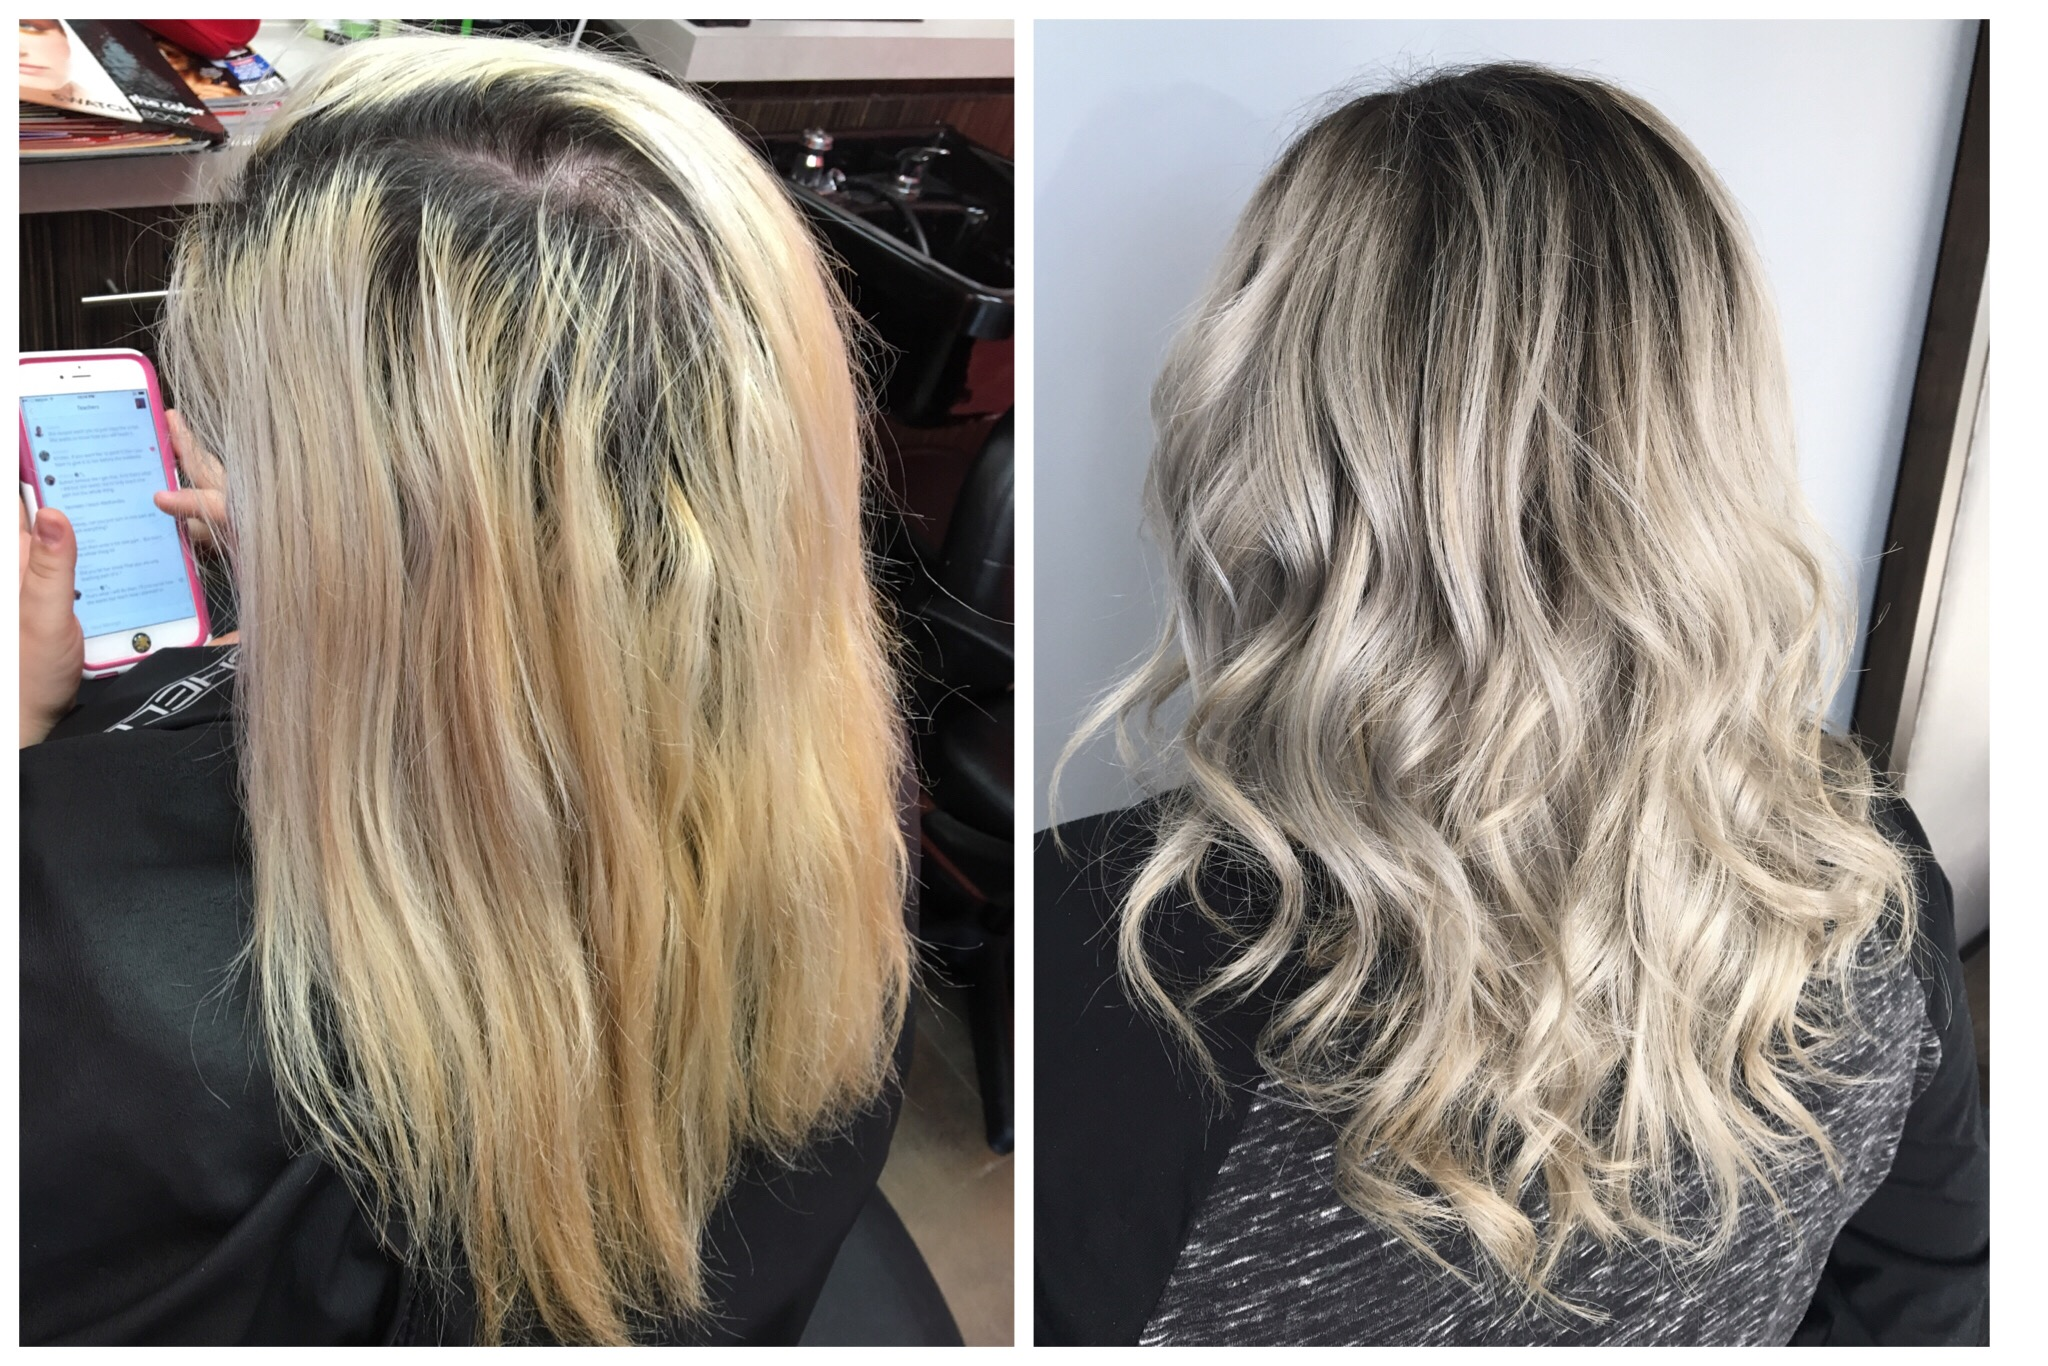 TRANSFORMATION: High-Maintenance to Dimensional, Rooty Ash-Blonde